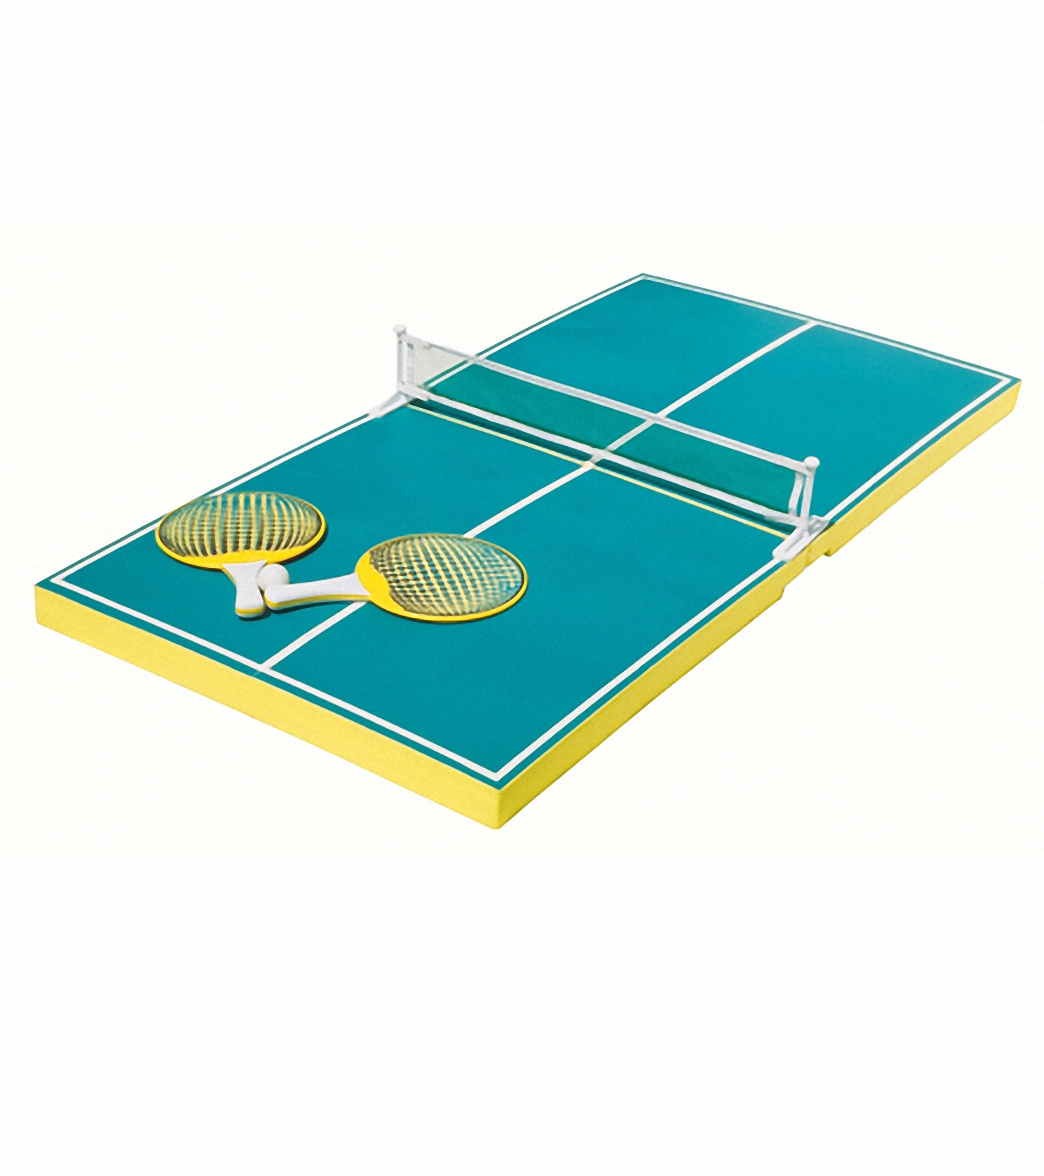 Poolmaster Floating Table Tennis Game At Free Shipping